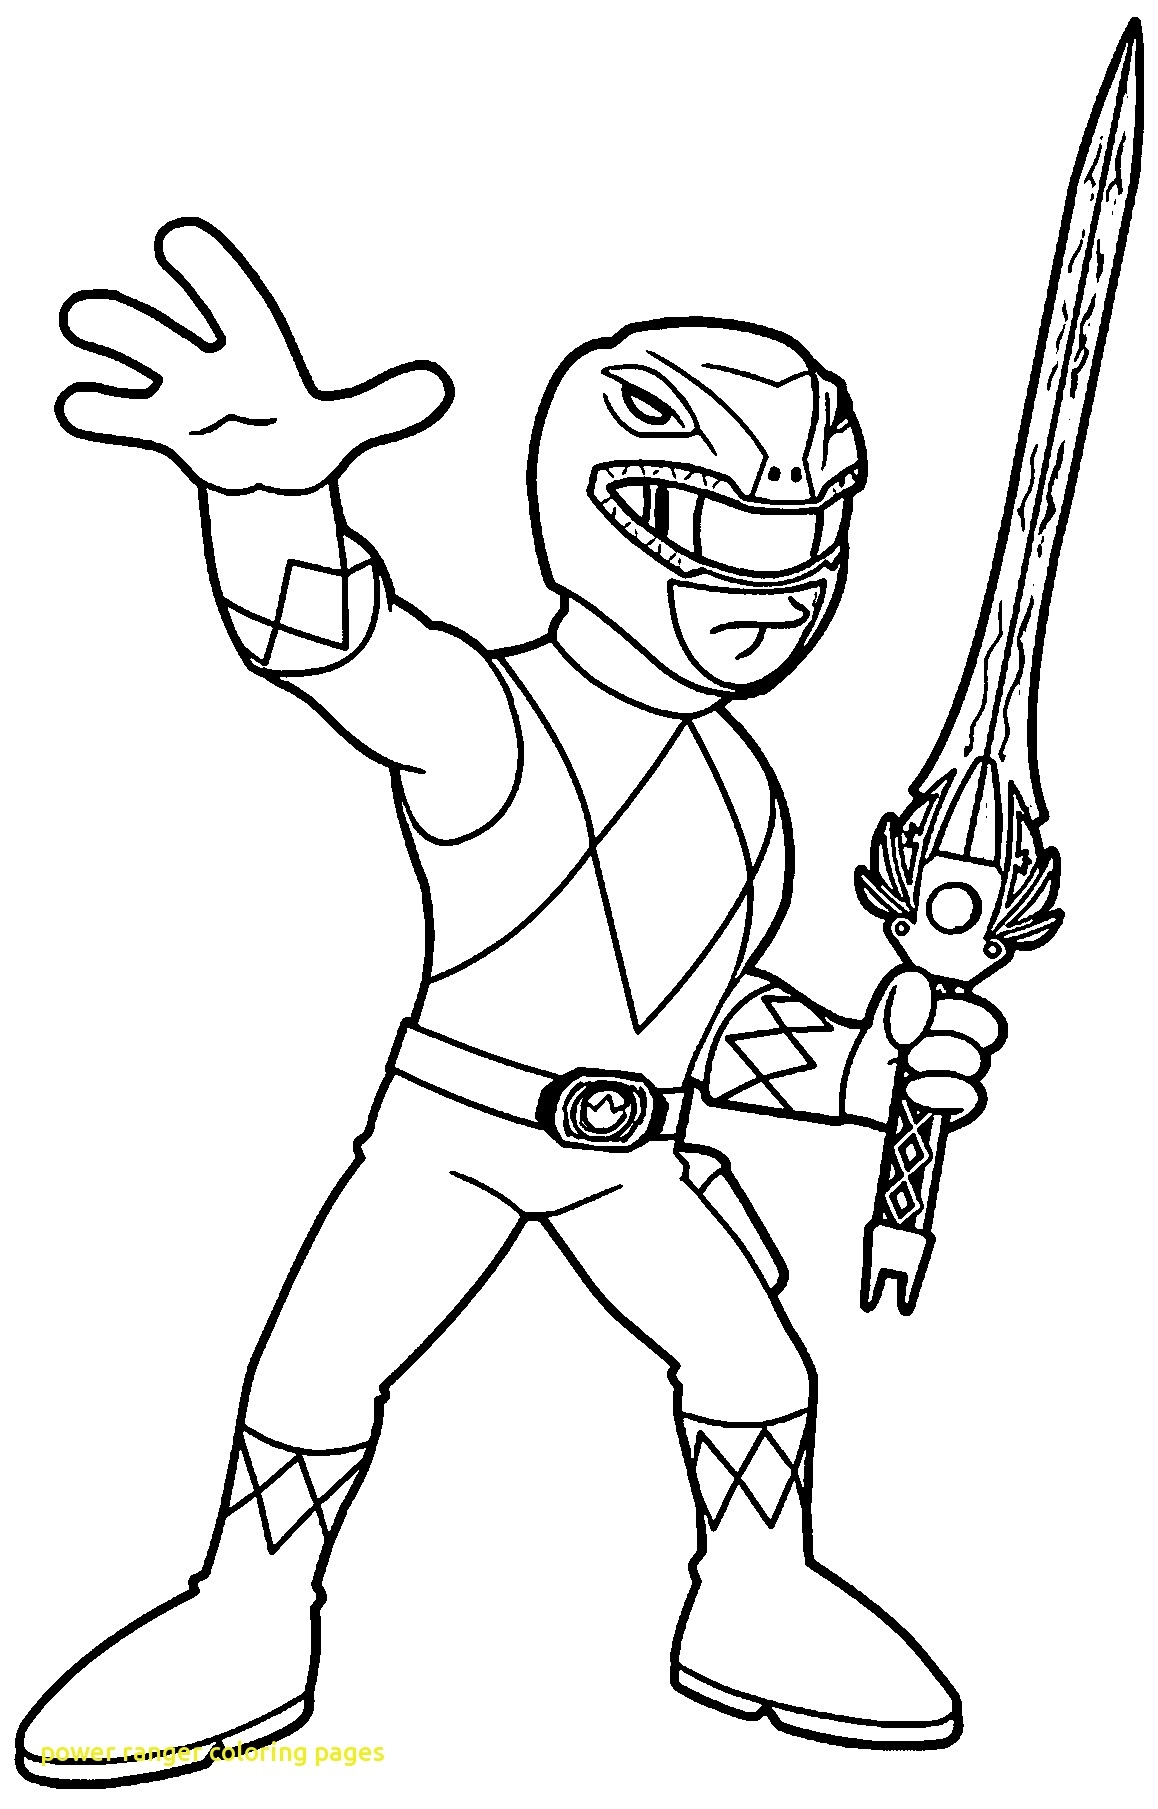 Dino Charge Coloring Pages at GetDrawings.com | Free for personal ...